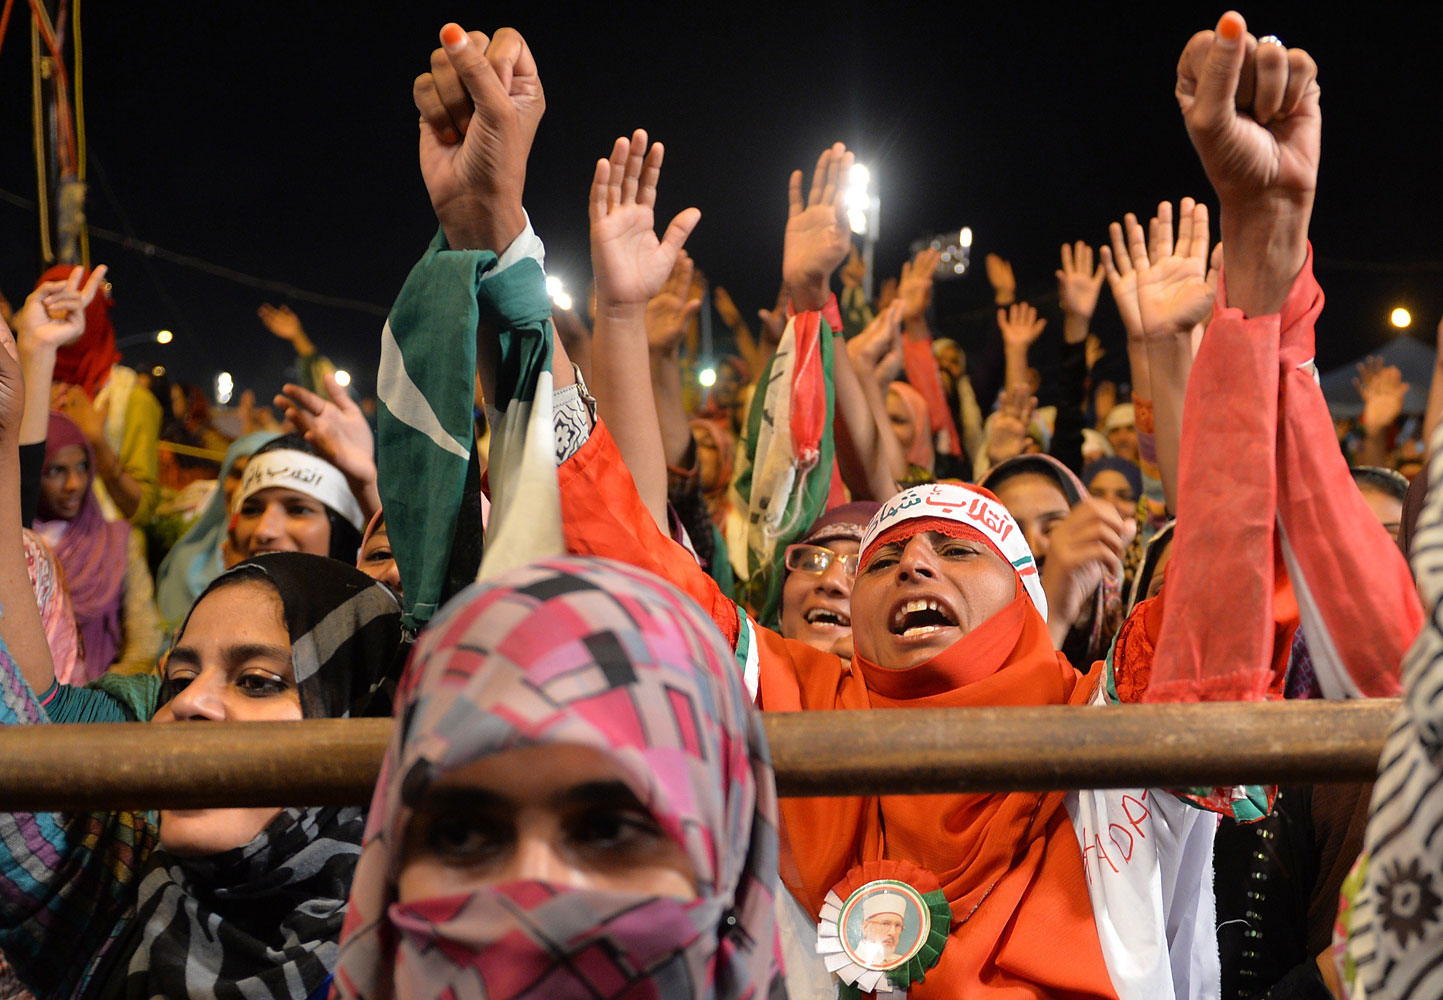 Pakistani supporters of Canada-based preacher Tahir-ul-Qadri shout anti-government slogans during a protest in front of the Parliament in Islamabad on Aug. 29, 2014.